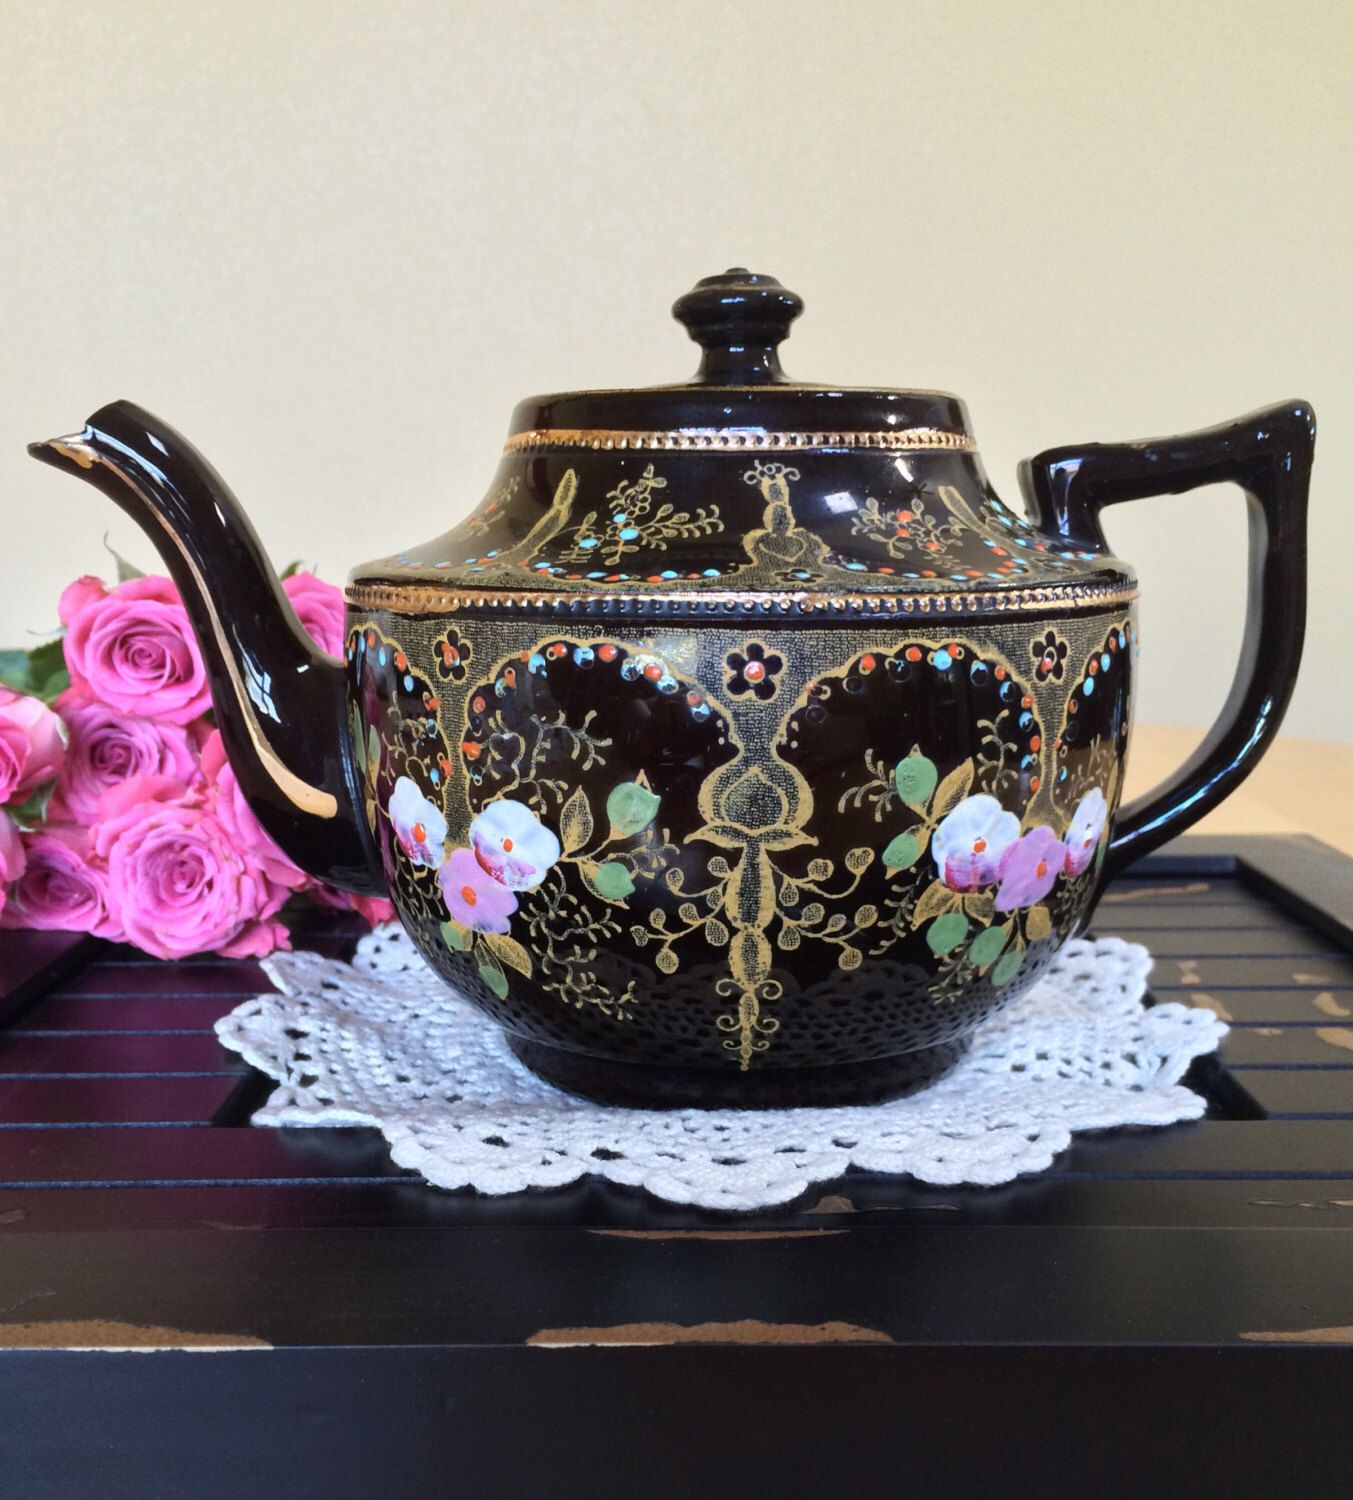 Rare Sadler Black Redware F. & V.I. Teapot, Hand Painted with Gold Trim, Made in England - c.1930s by ToZoTeacups on Etsy https://www.etsy.com/listing/294335597/rare-sadler-black-redware-f-vi-teapot